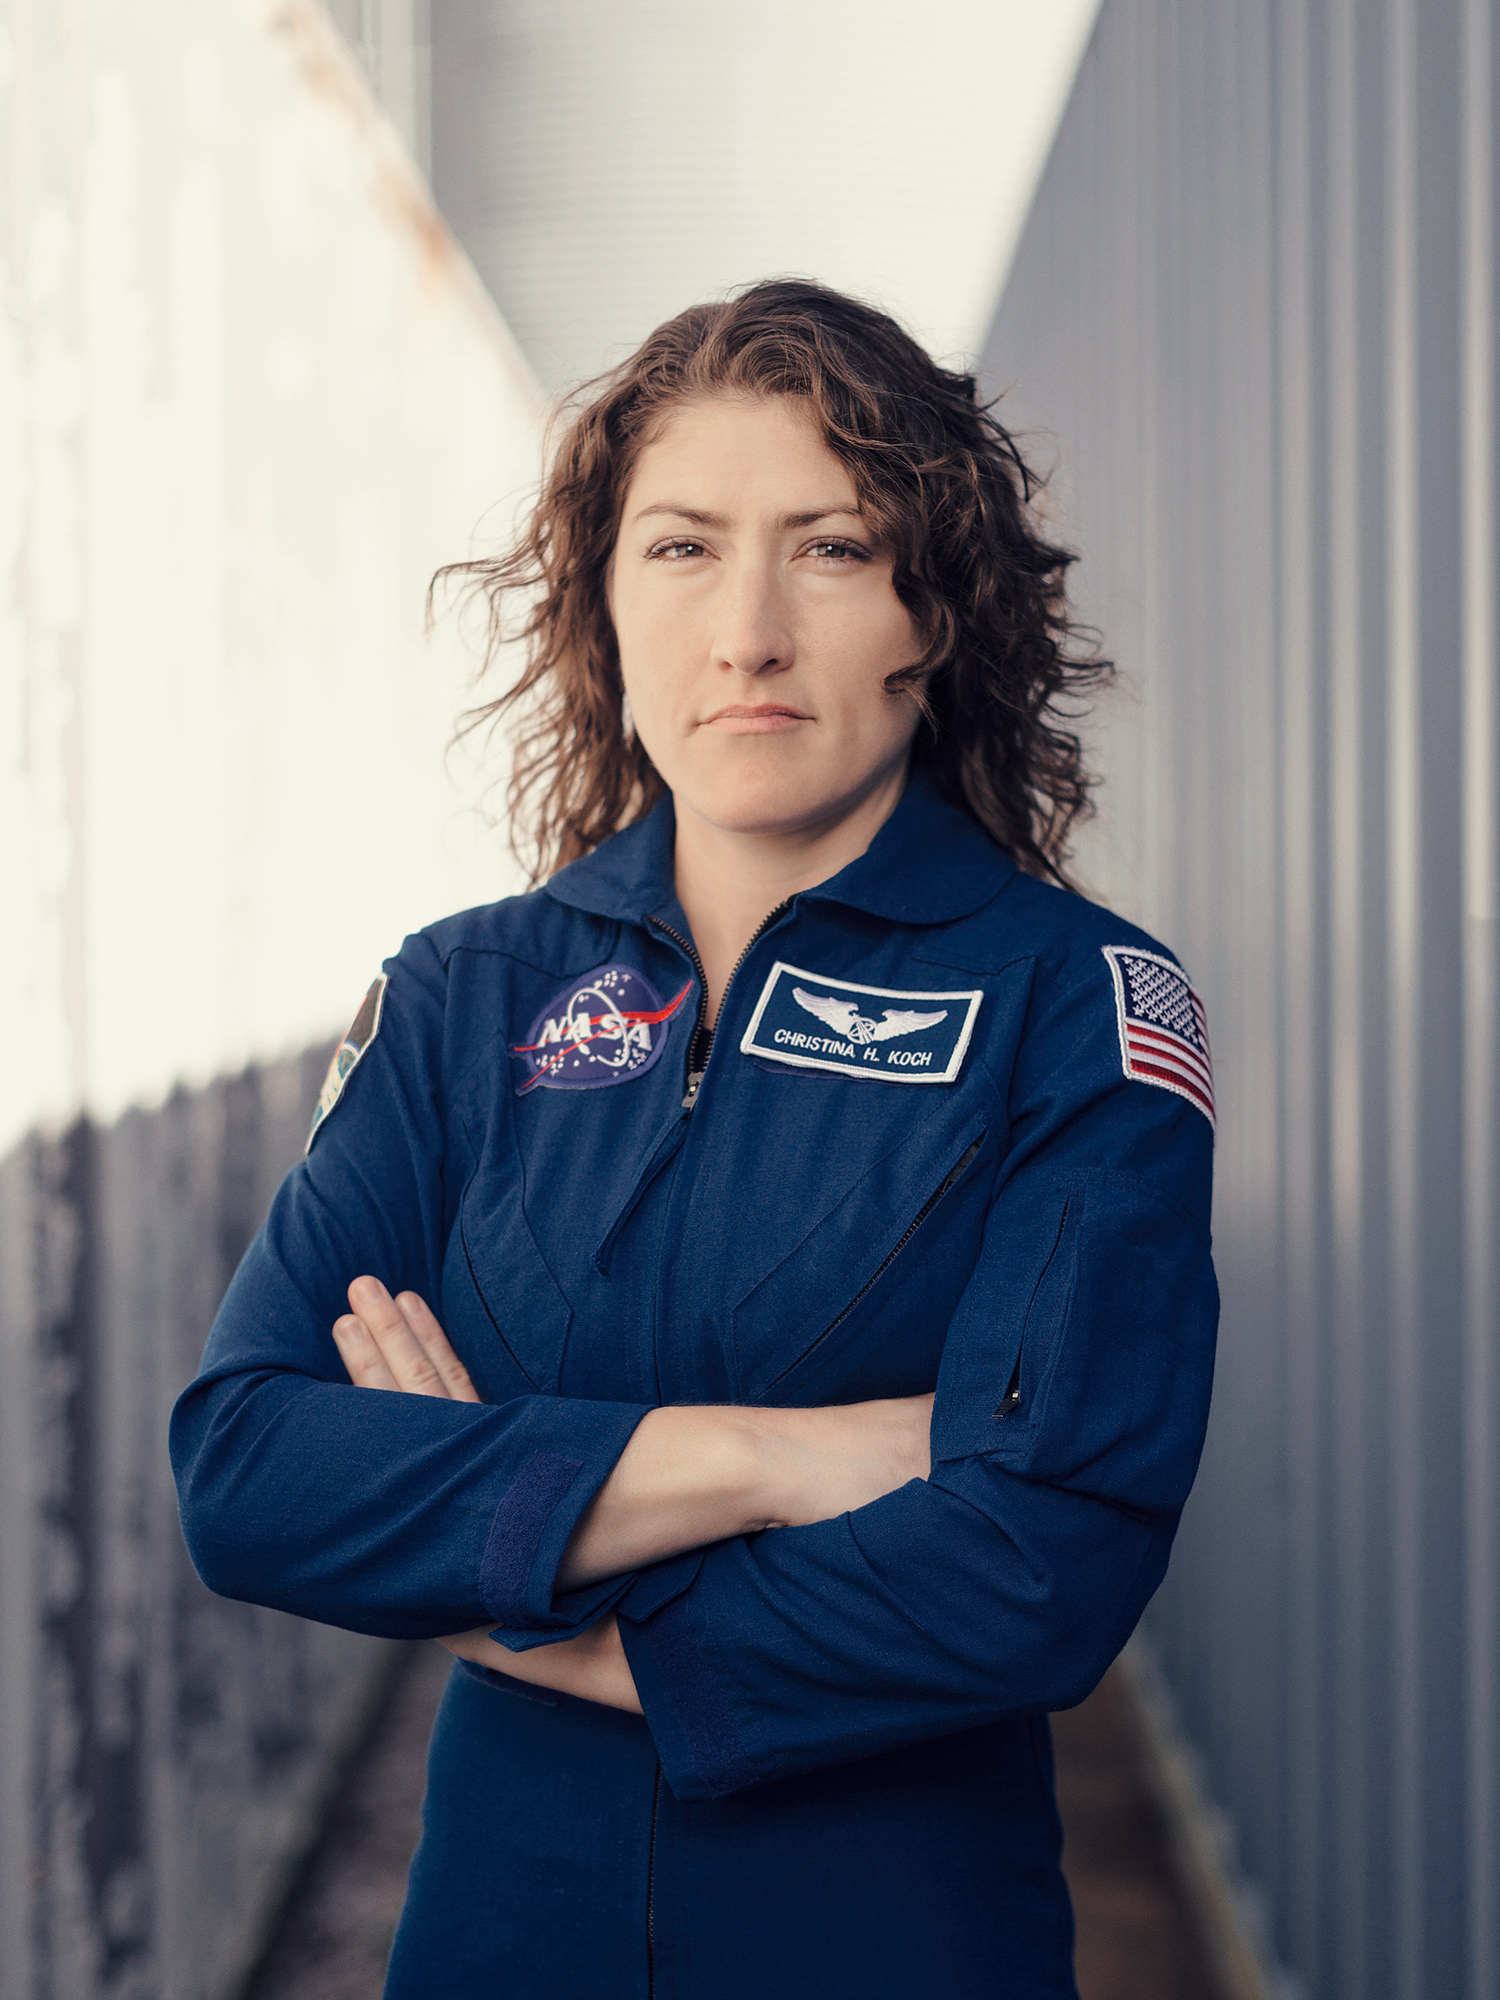 Christina Koch, NASA astronaut, photographed at Johnson Space Center in Houston, Texas by Houston photographer, Todd Spoth.